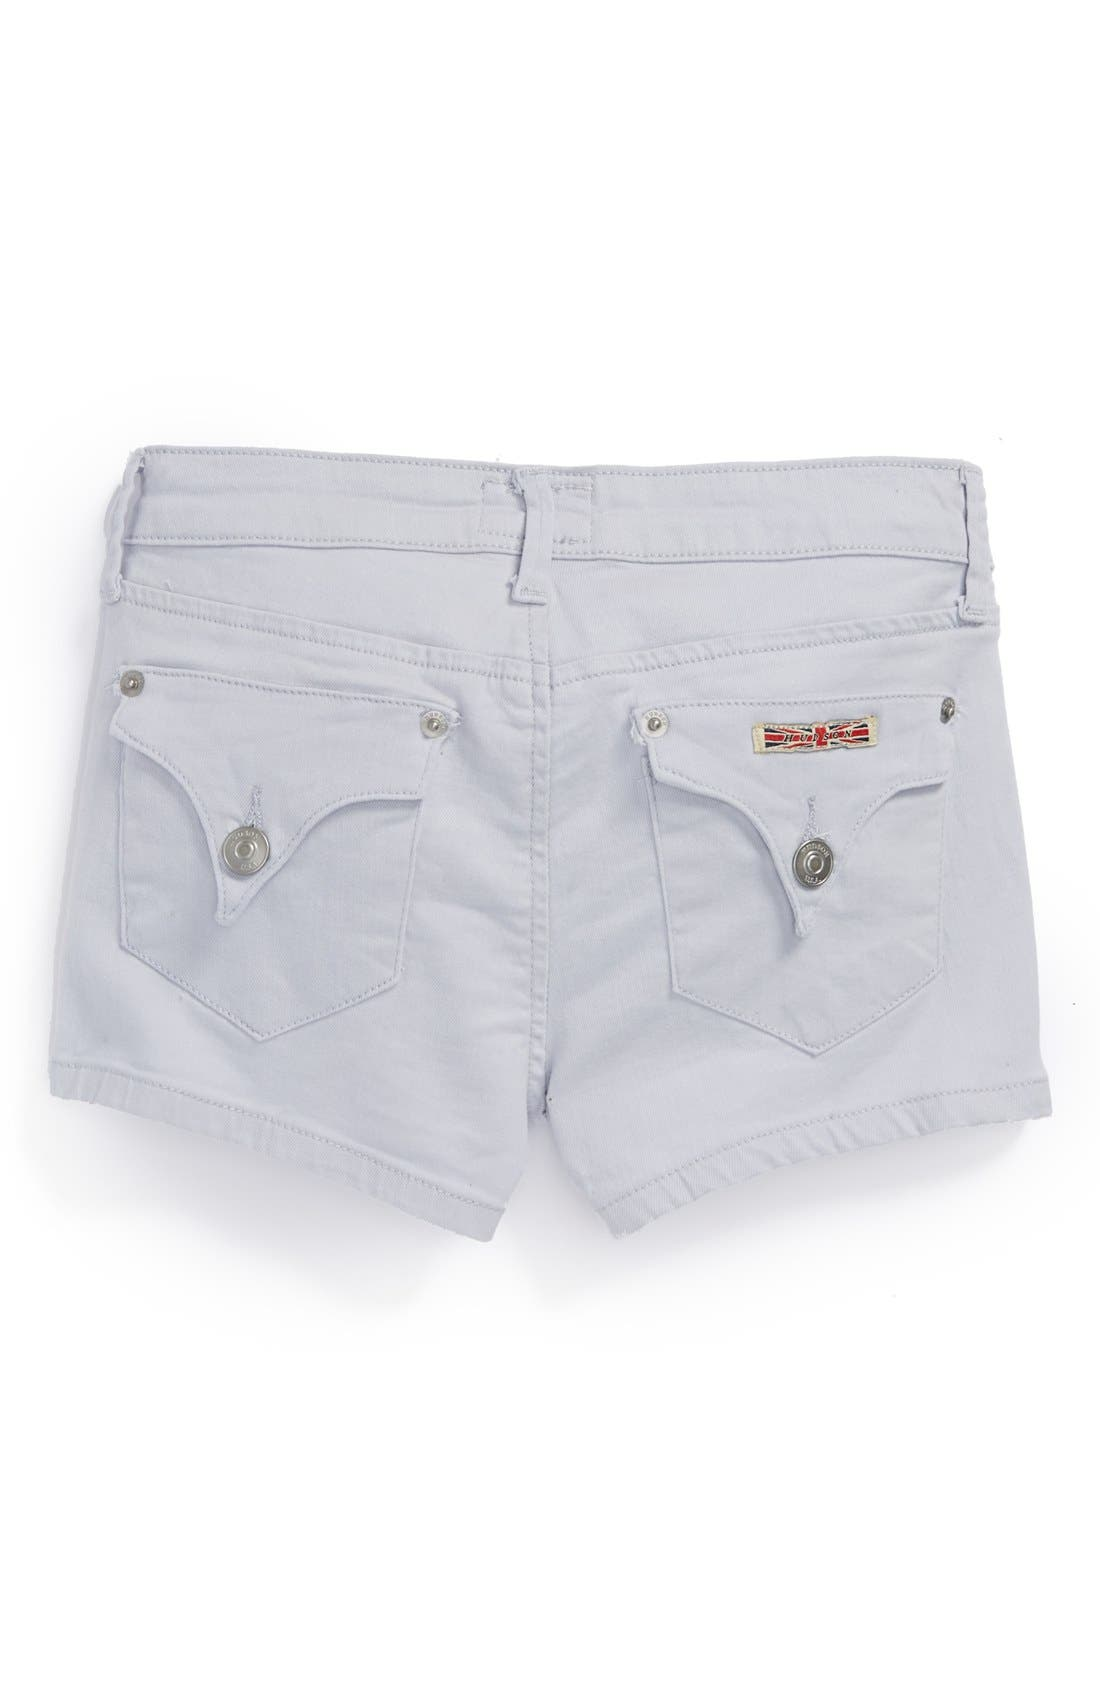 Alternate Image 1 Selected - Hudson Kids 'Vice Versa' Shorts (Little Girls)